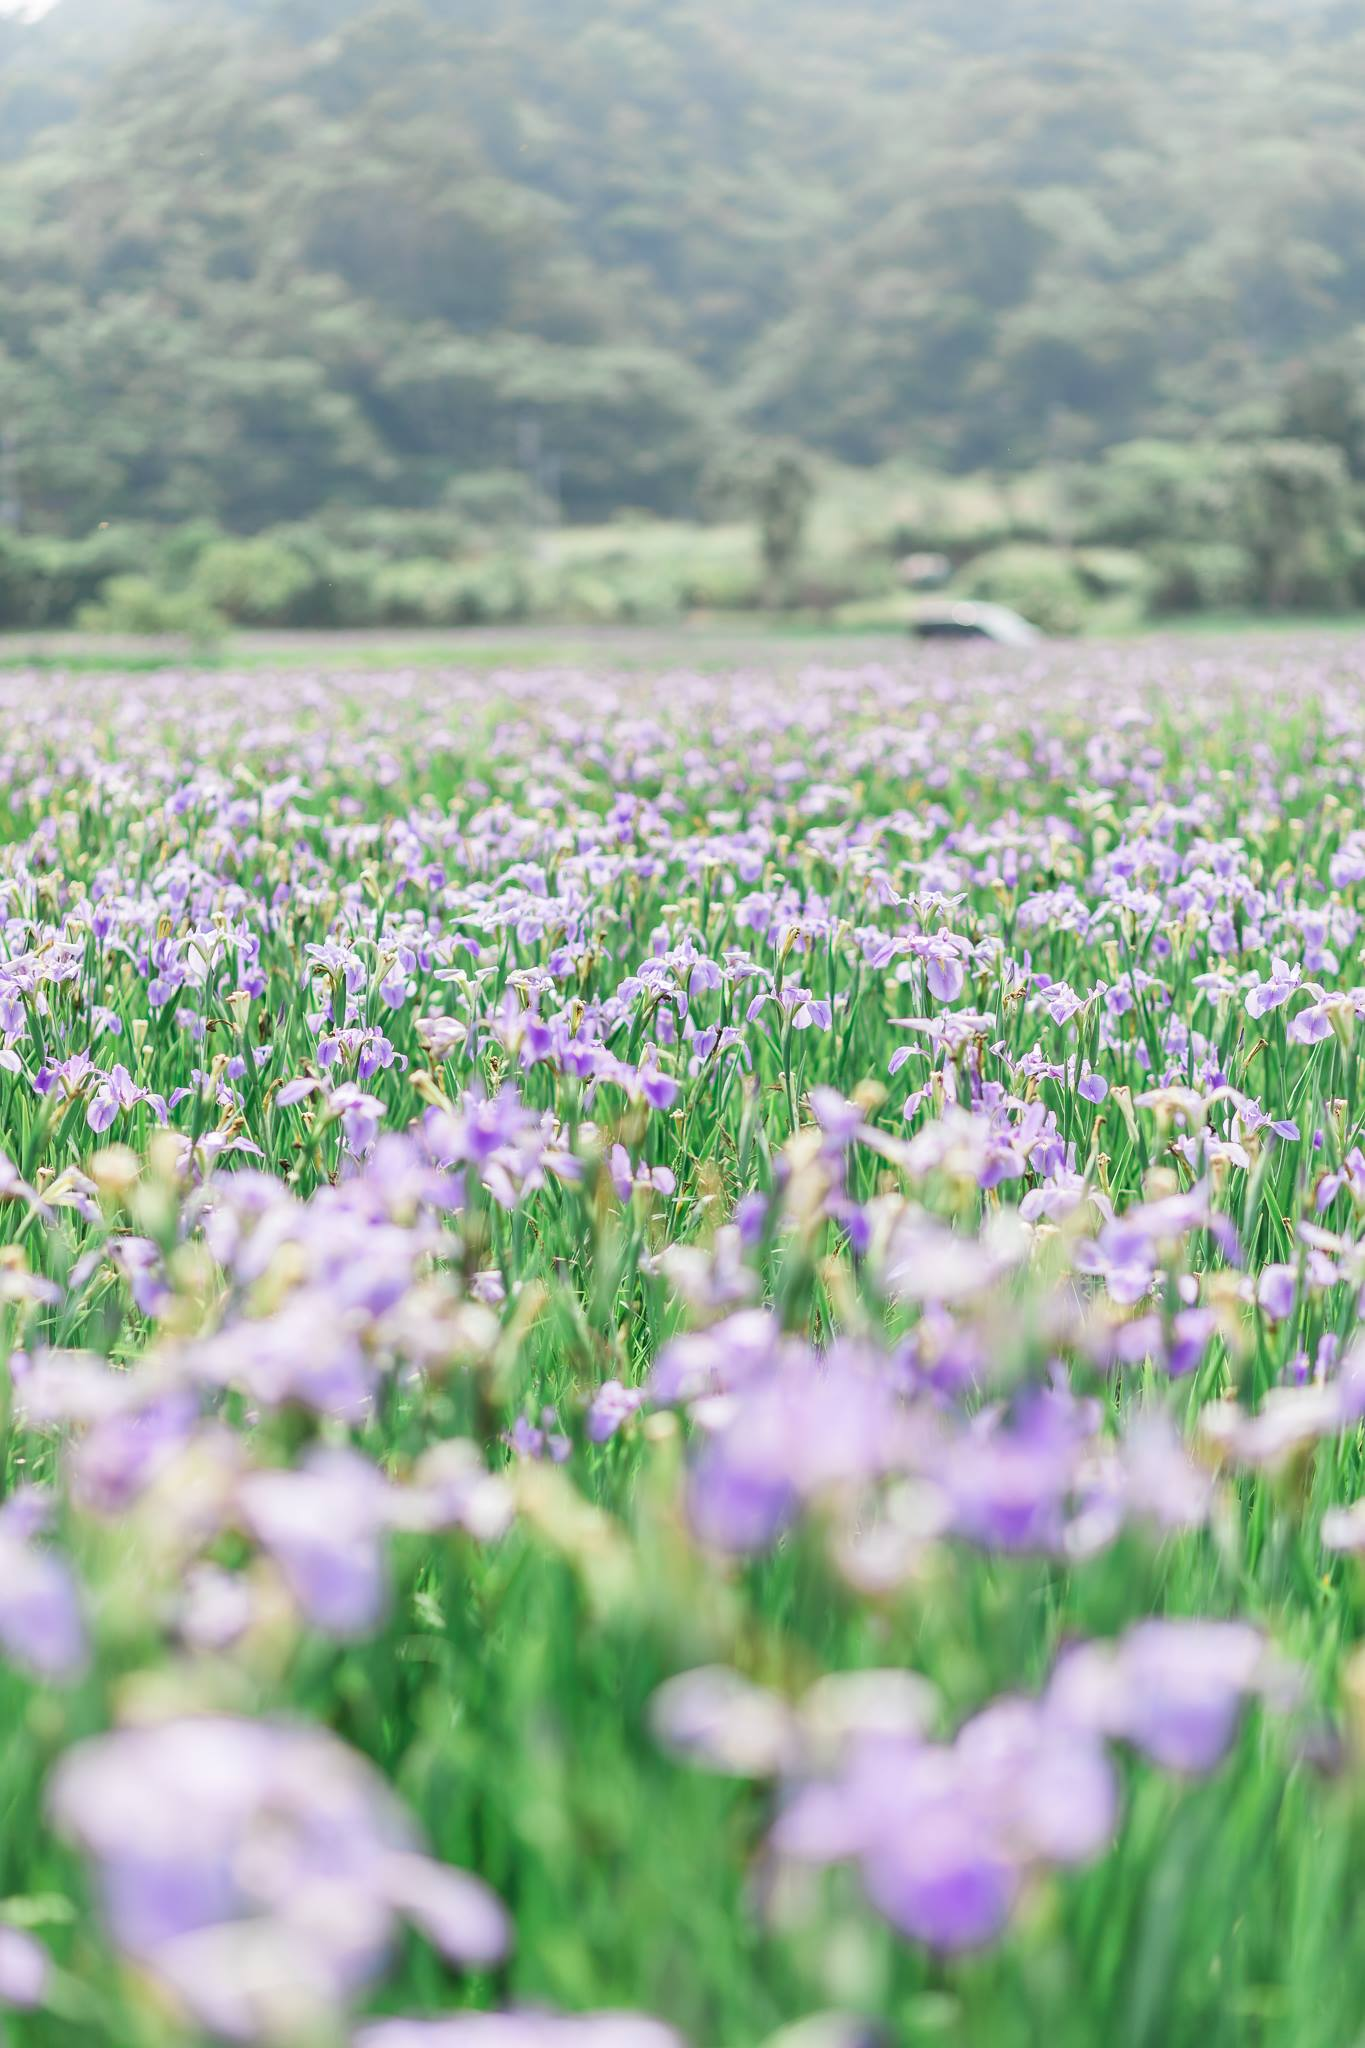 Okinawa iris field mommy and me2.jpg